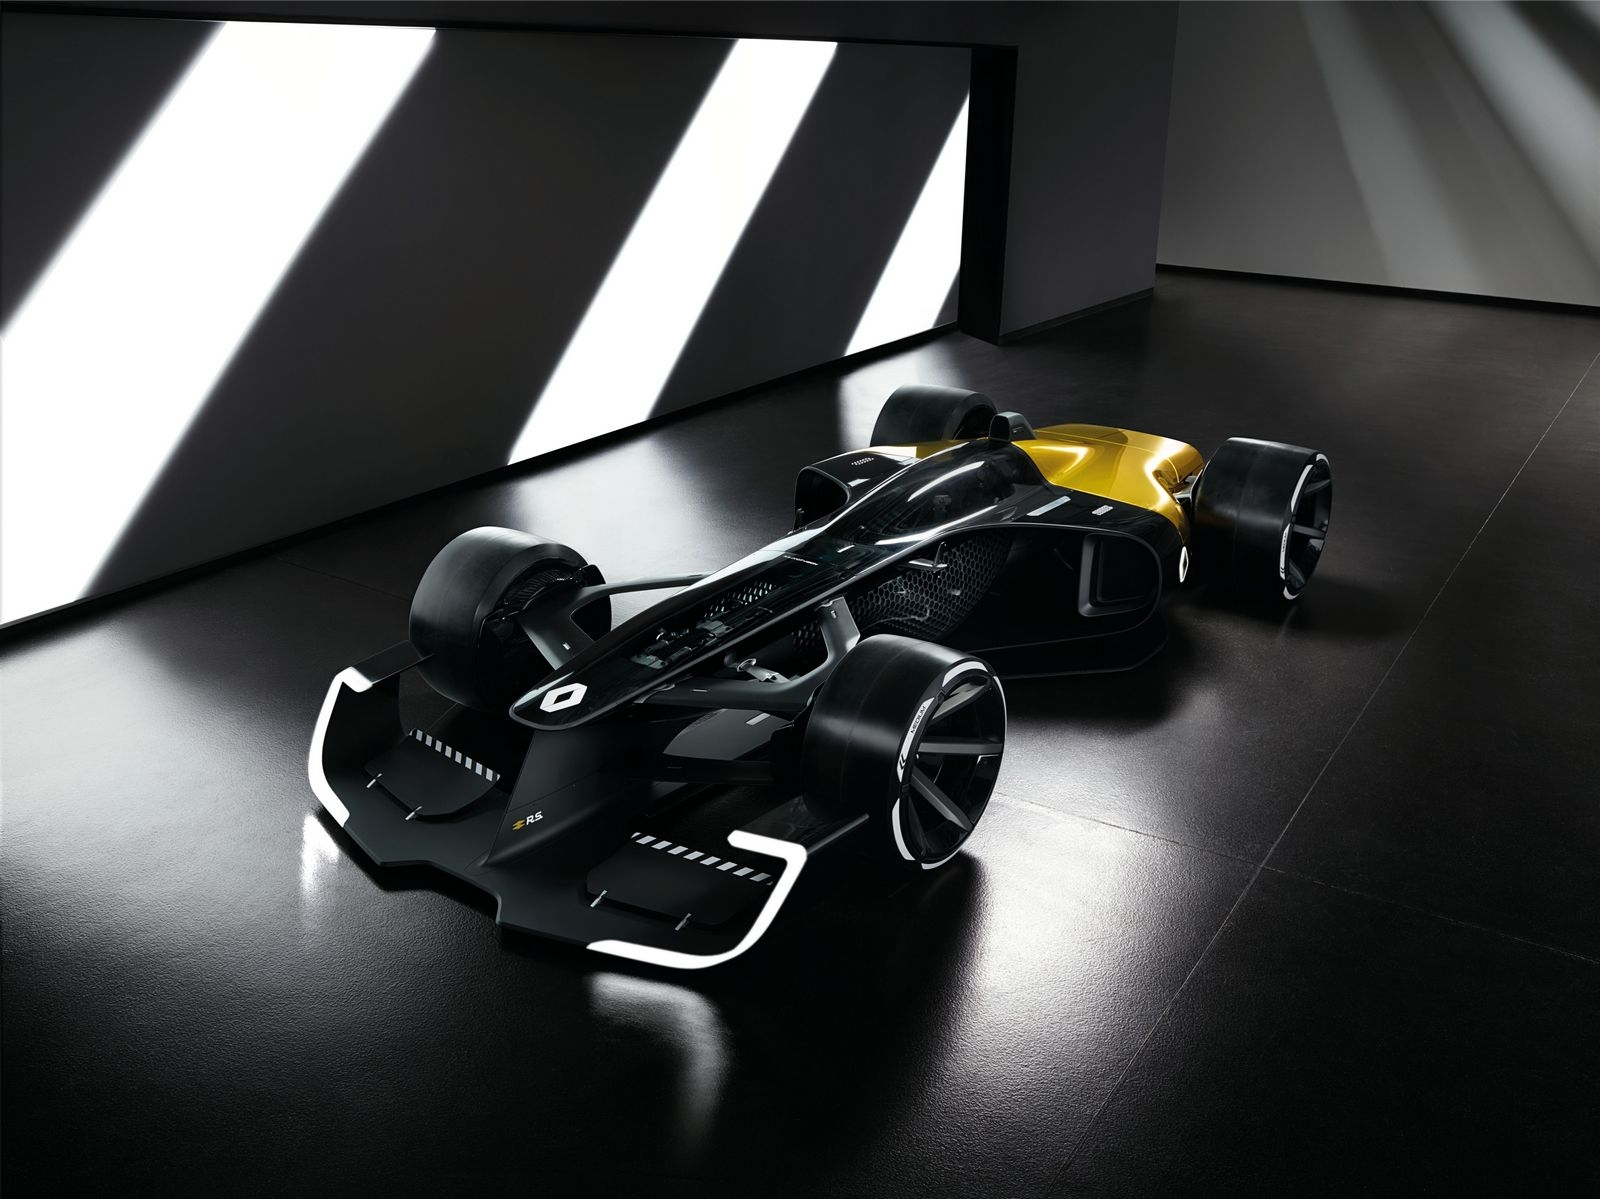 salon de shanghai 2017 renault d voile le futur de la f1 avec le concept rs 2027 vision. Black Bedroom Furniture Sets. Home Design Ideas